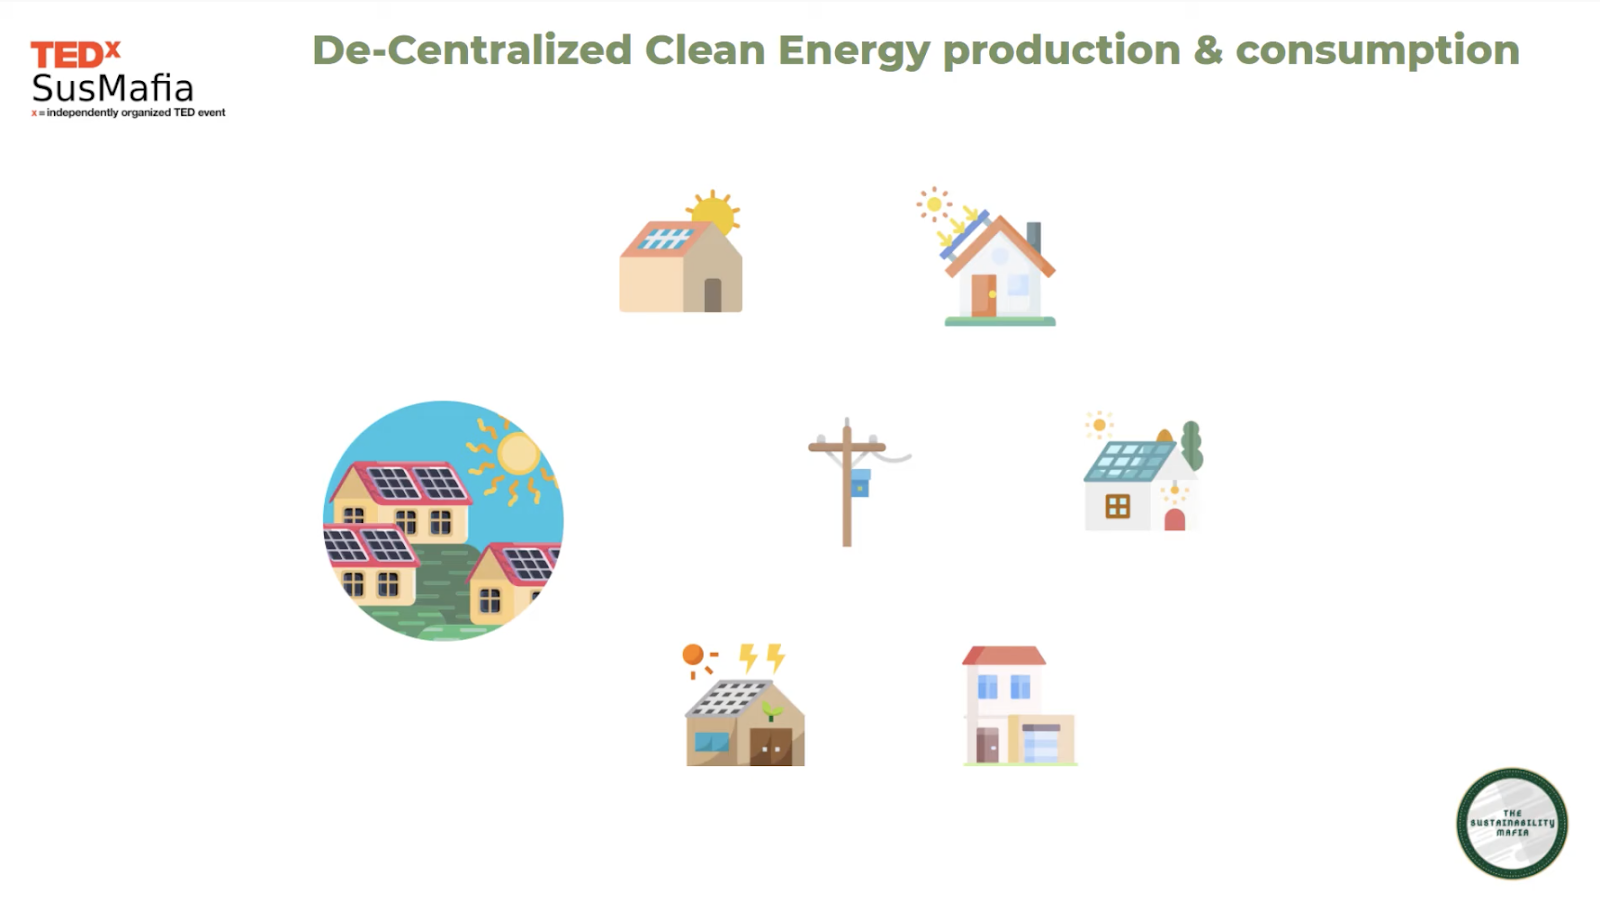 decentralized clean energy production and consumption